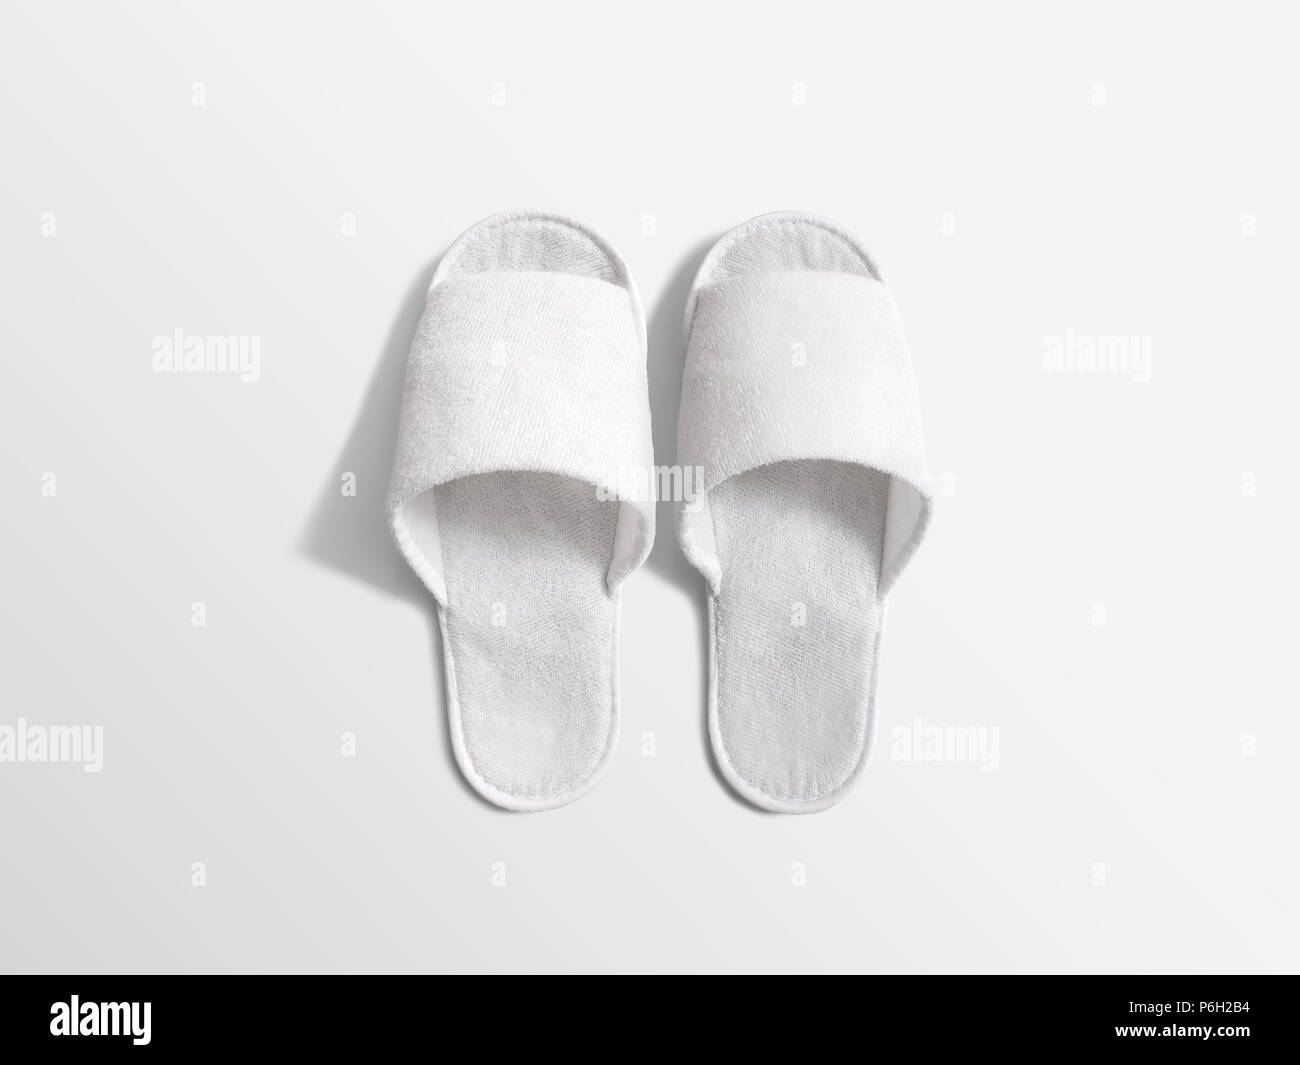 Pair of blank white home slippers, design mockup  House